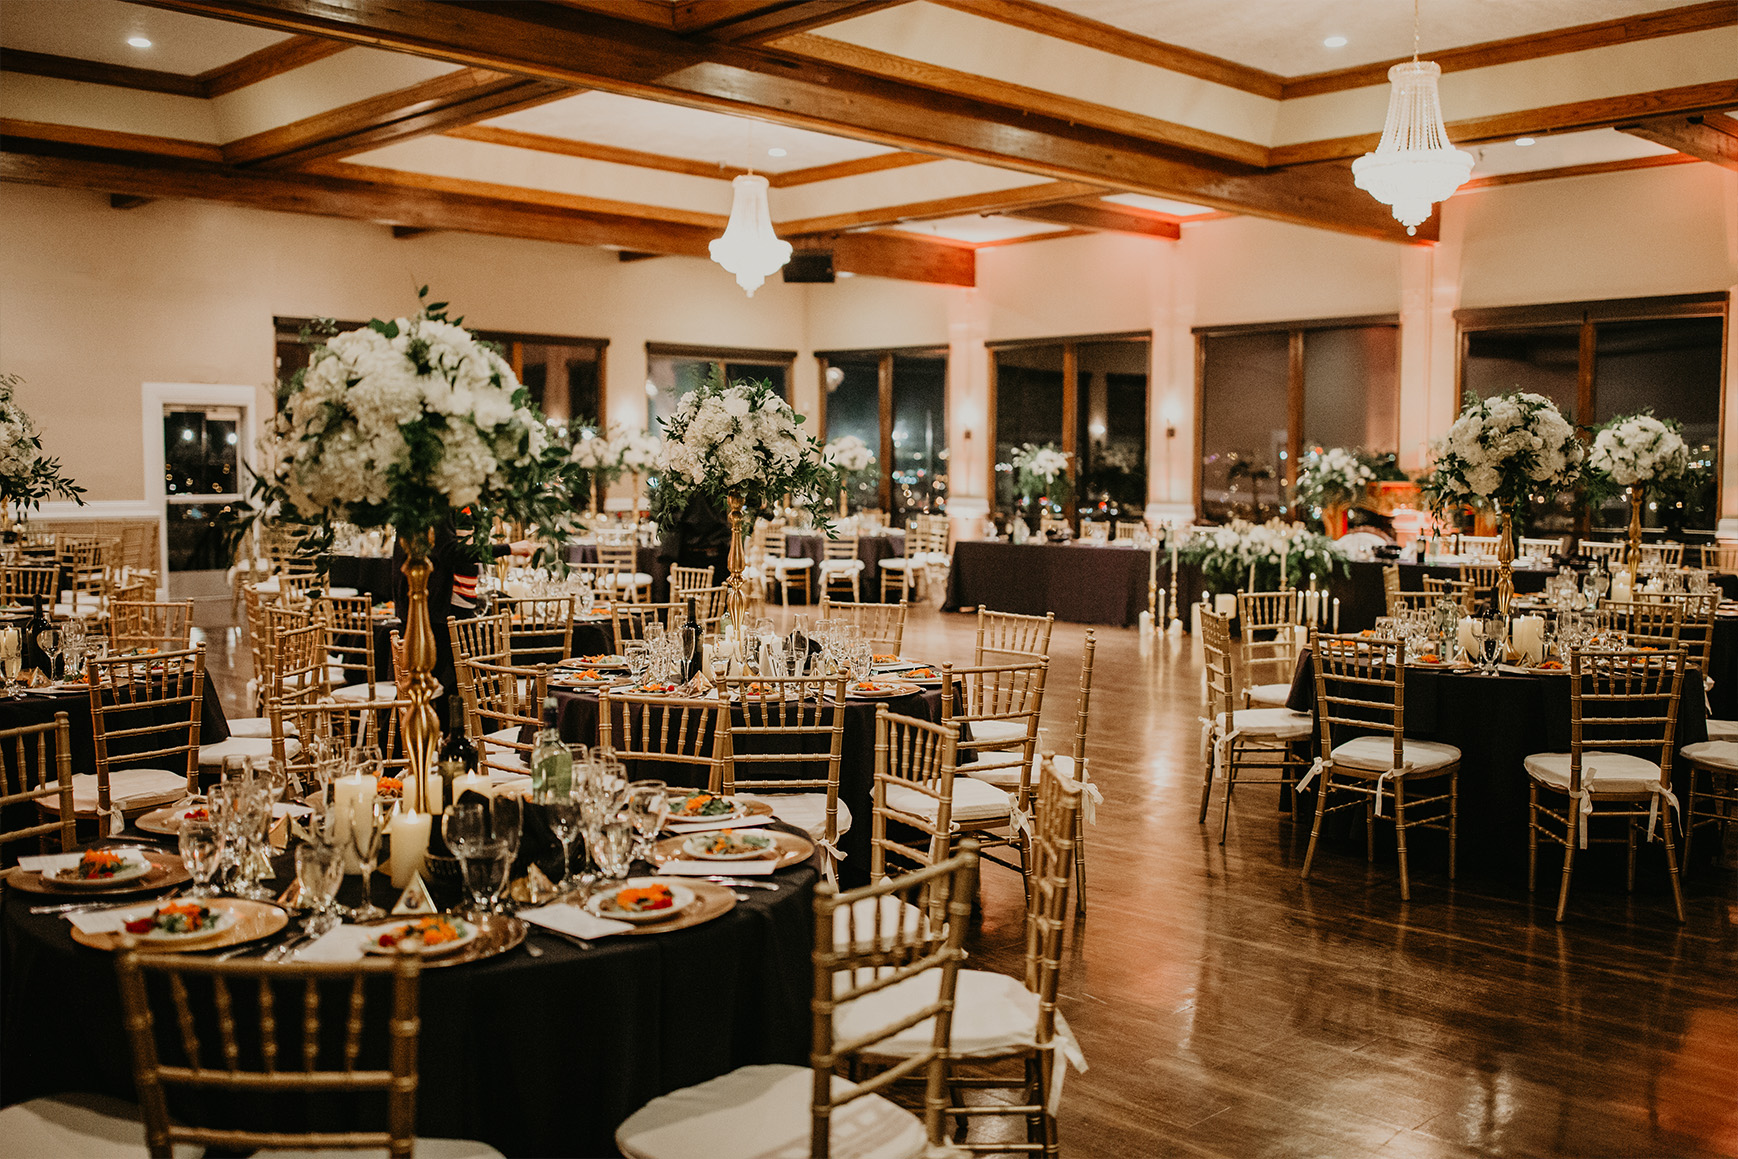 Amazingly spacious ballroom with views - Brittany Hill - Thornton, Colorado - Adams County - Weld County - Wedgewood Weddings